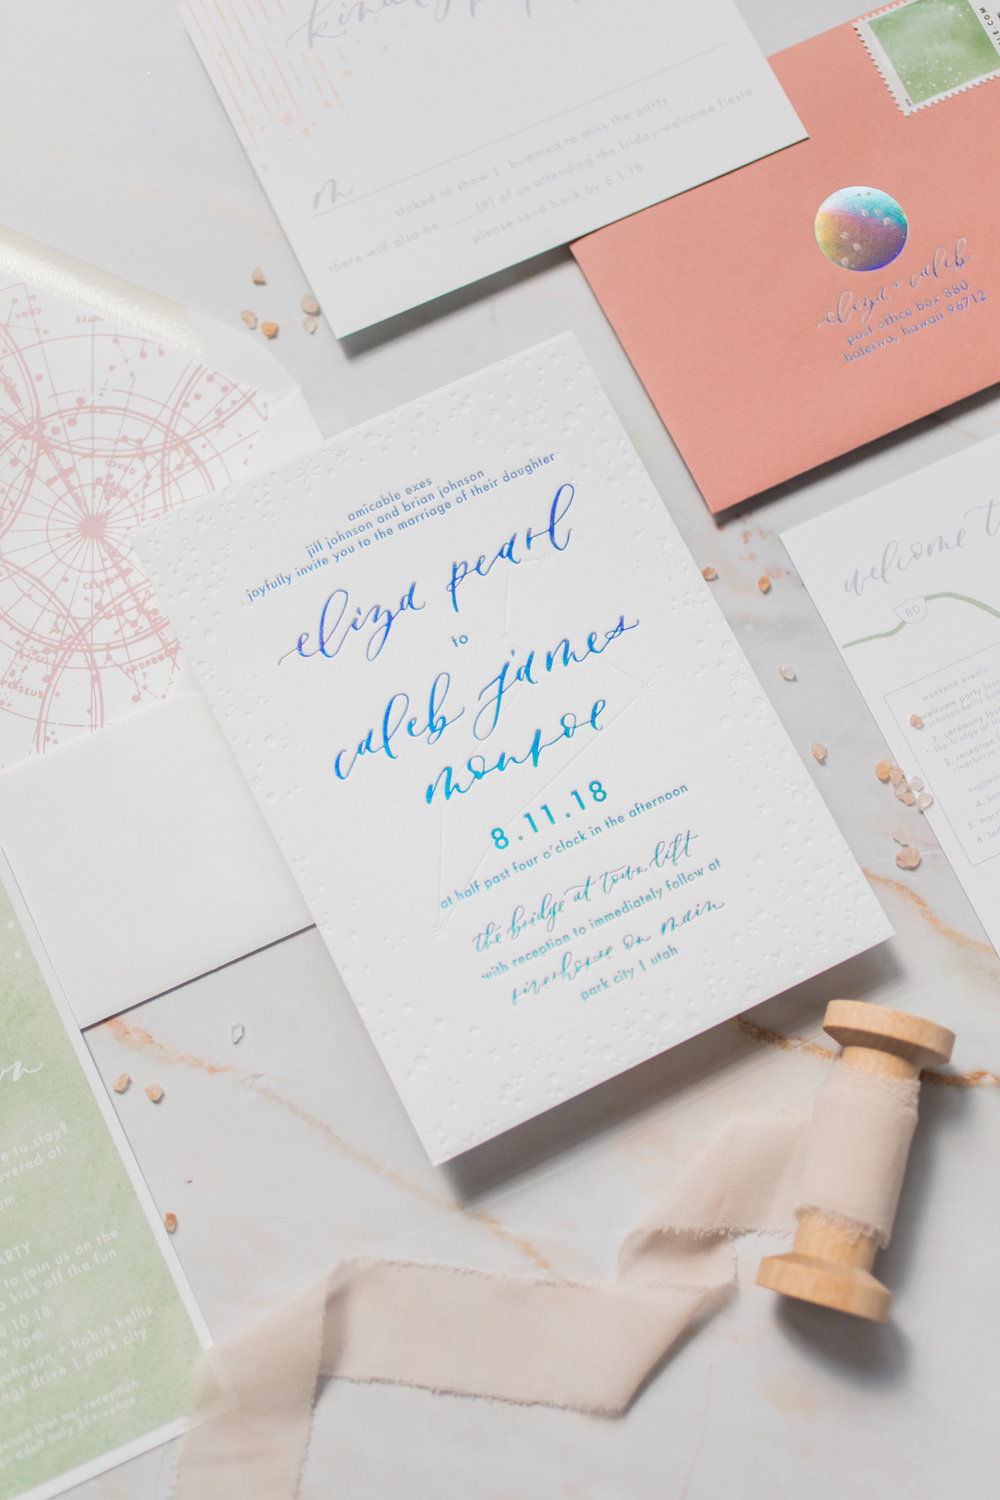 Starry holographic wedding invitations